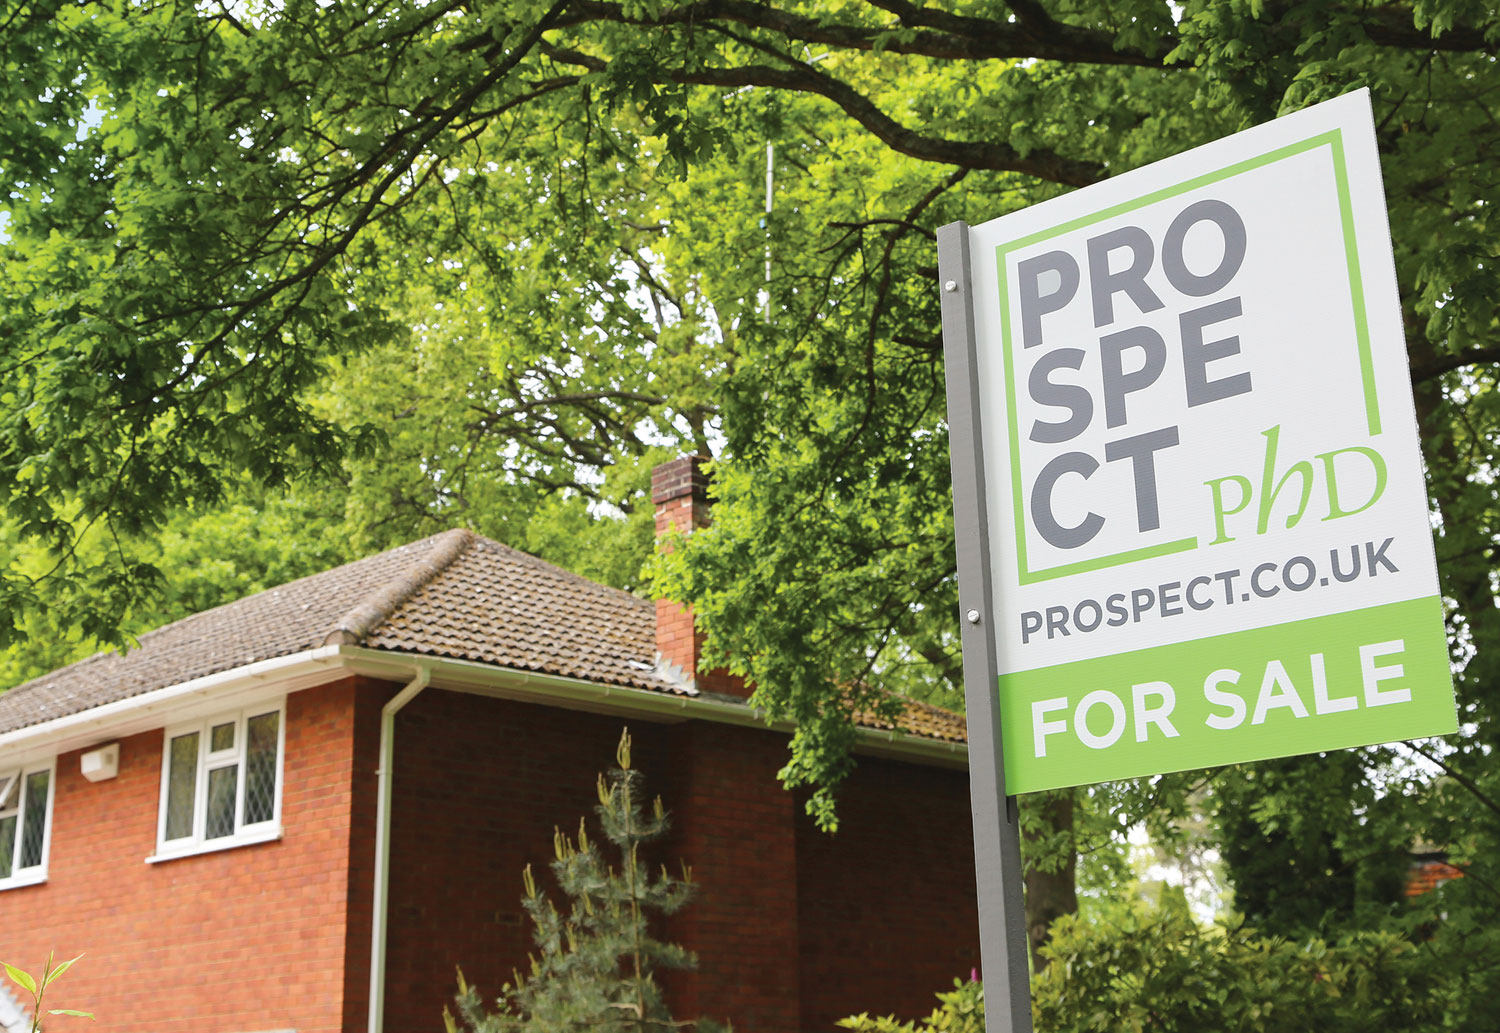 Prospect PHD rebranded for sale board